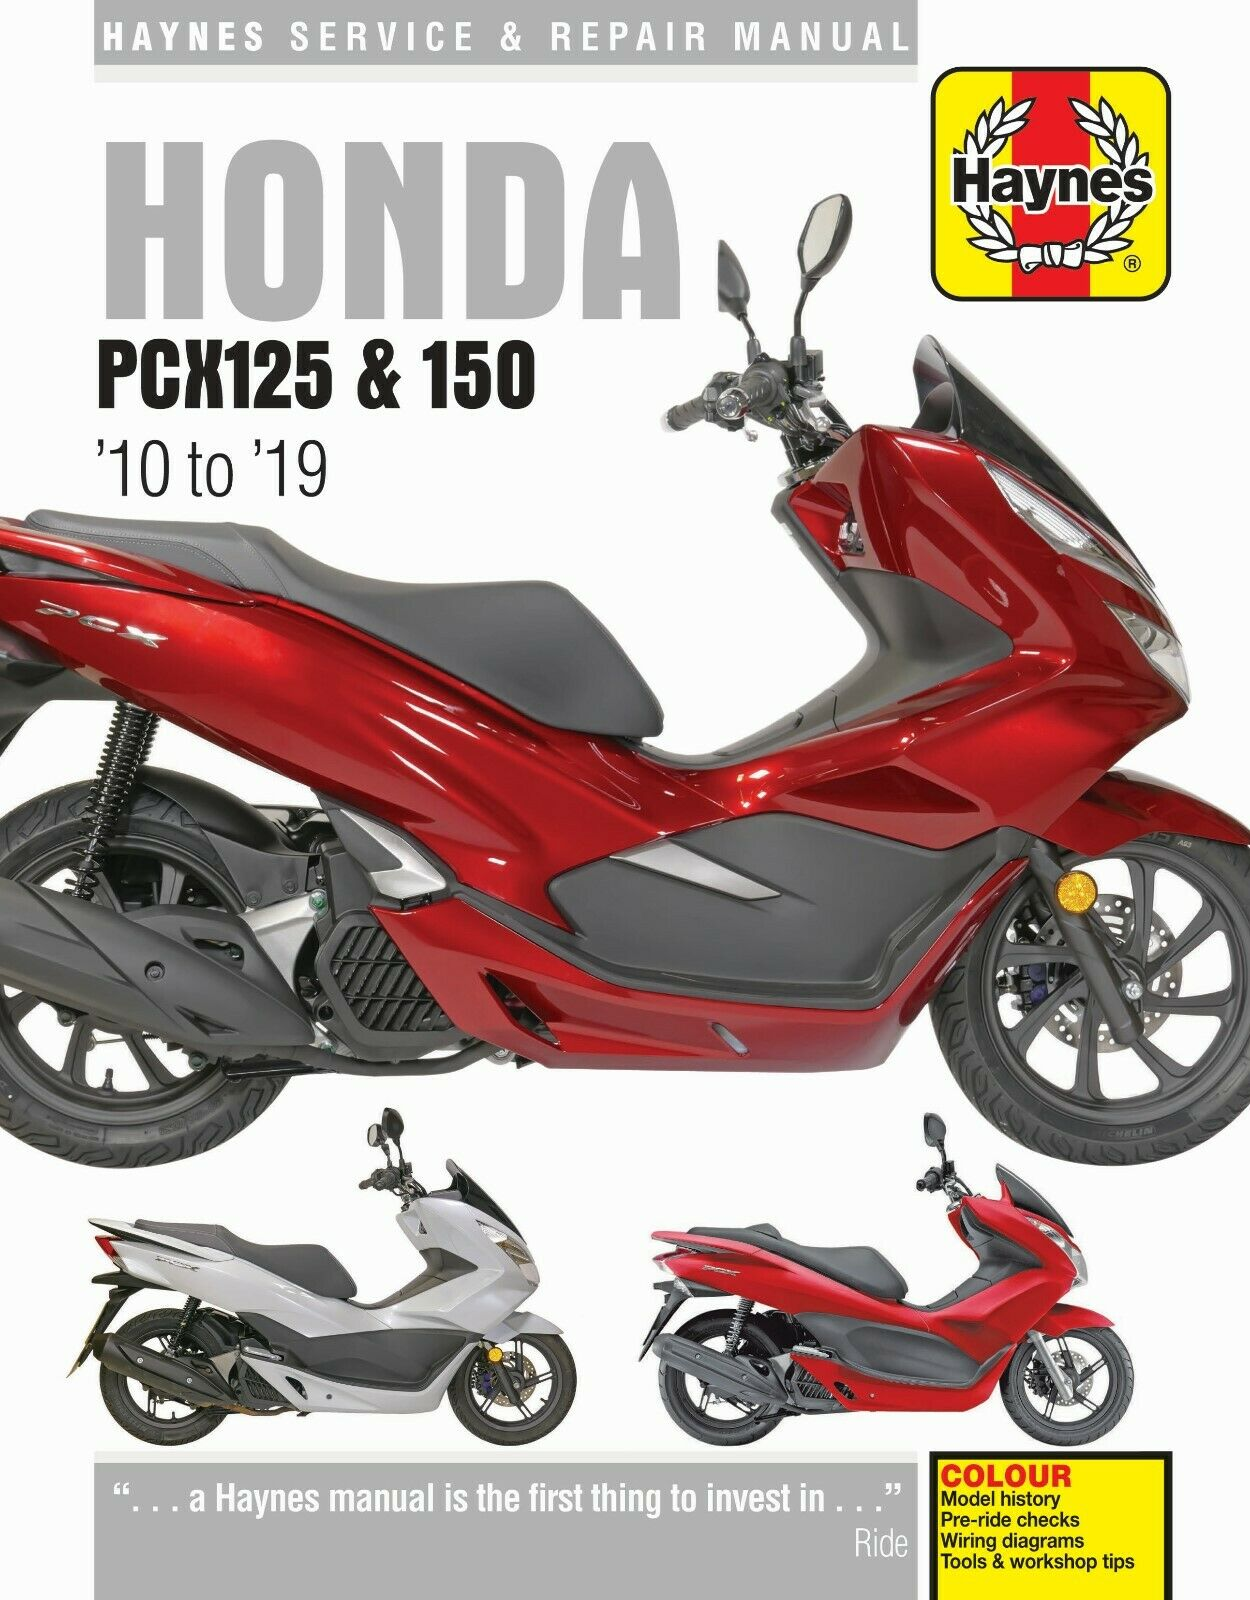 Details about HAYNES 6447 HONDA PCX125 & 150 2010 TO 2019 MOTORBIKE on